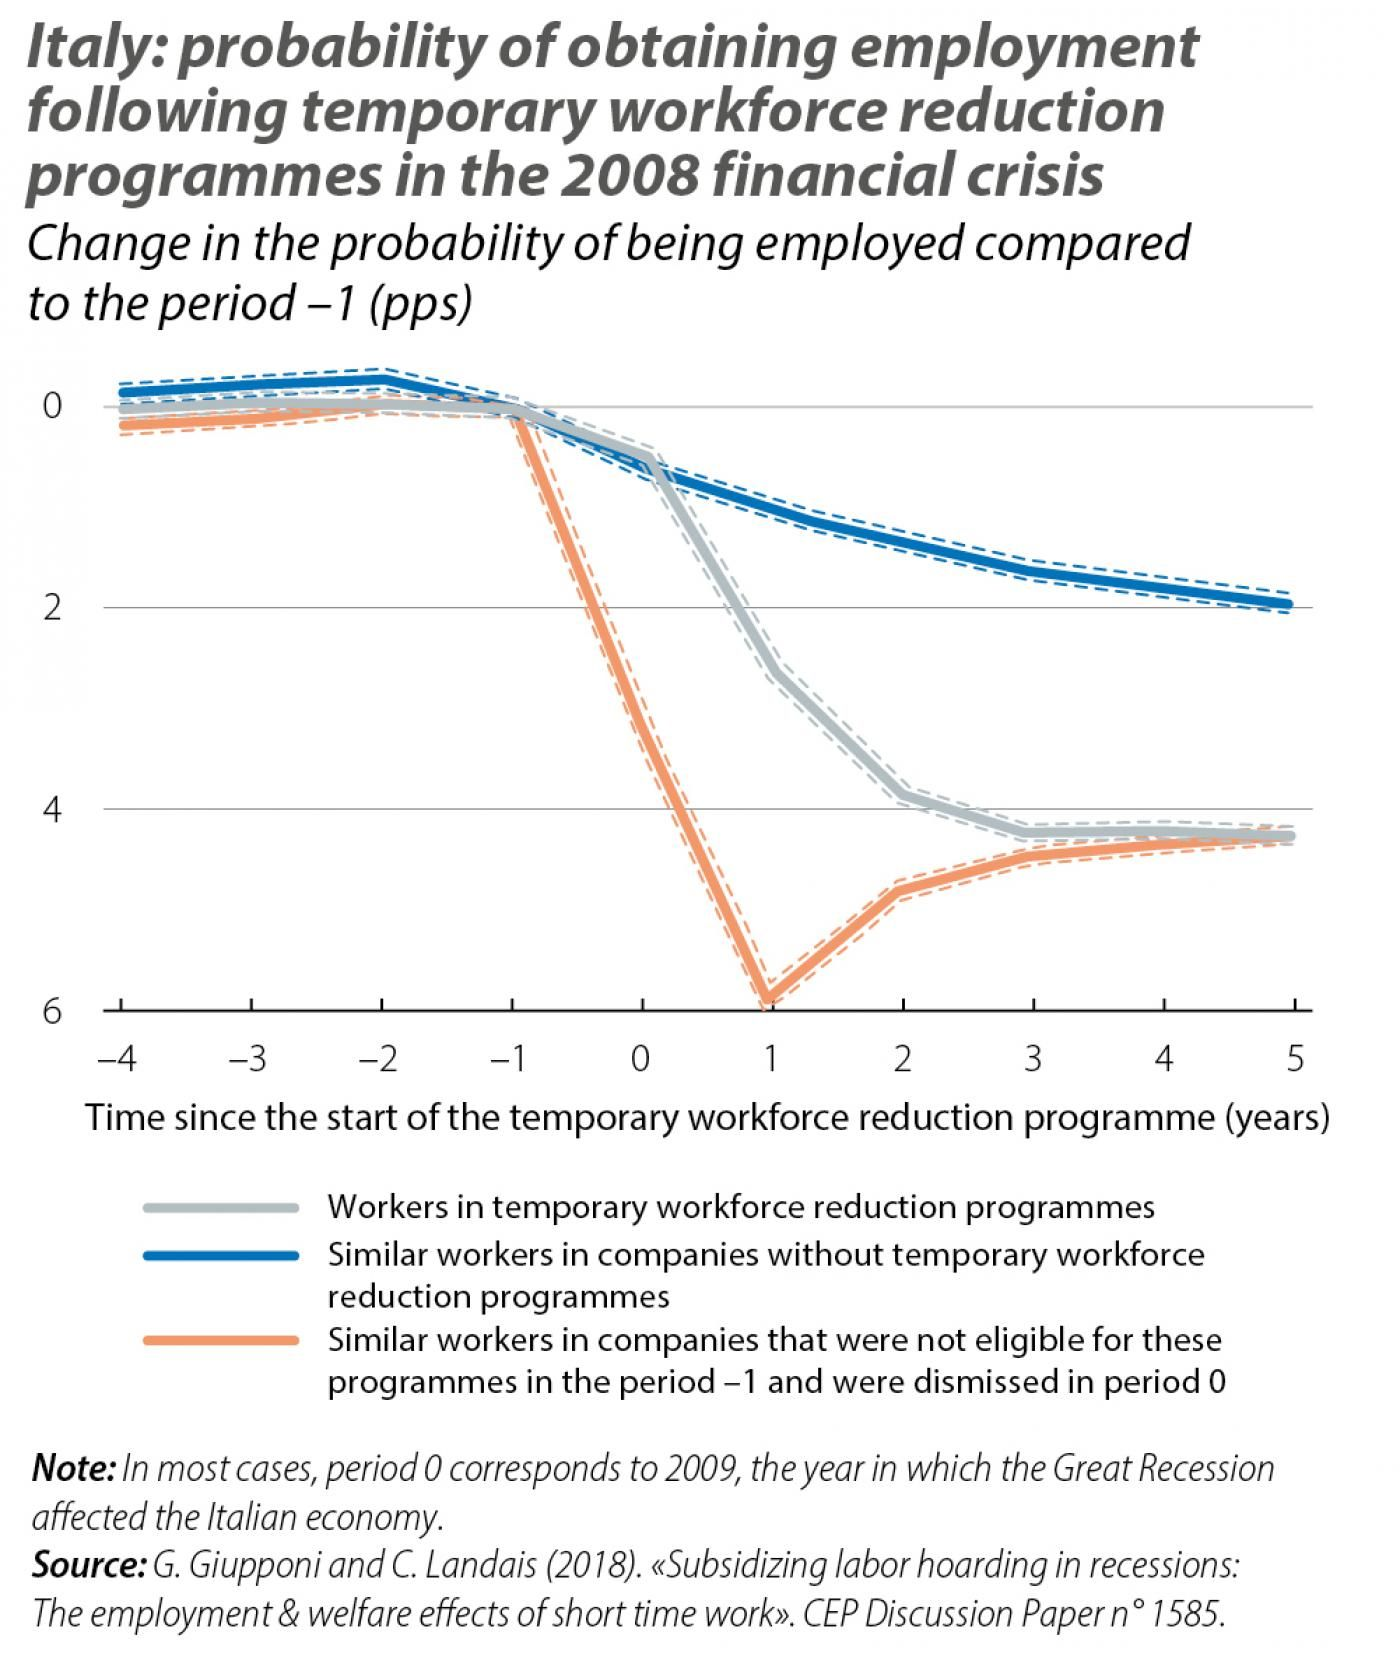 Italy: probability of obtaining employment following temporary workforce reduction programmes in the 2008 financial crisis